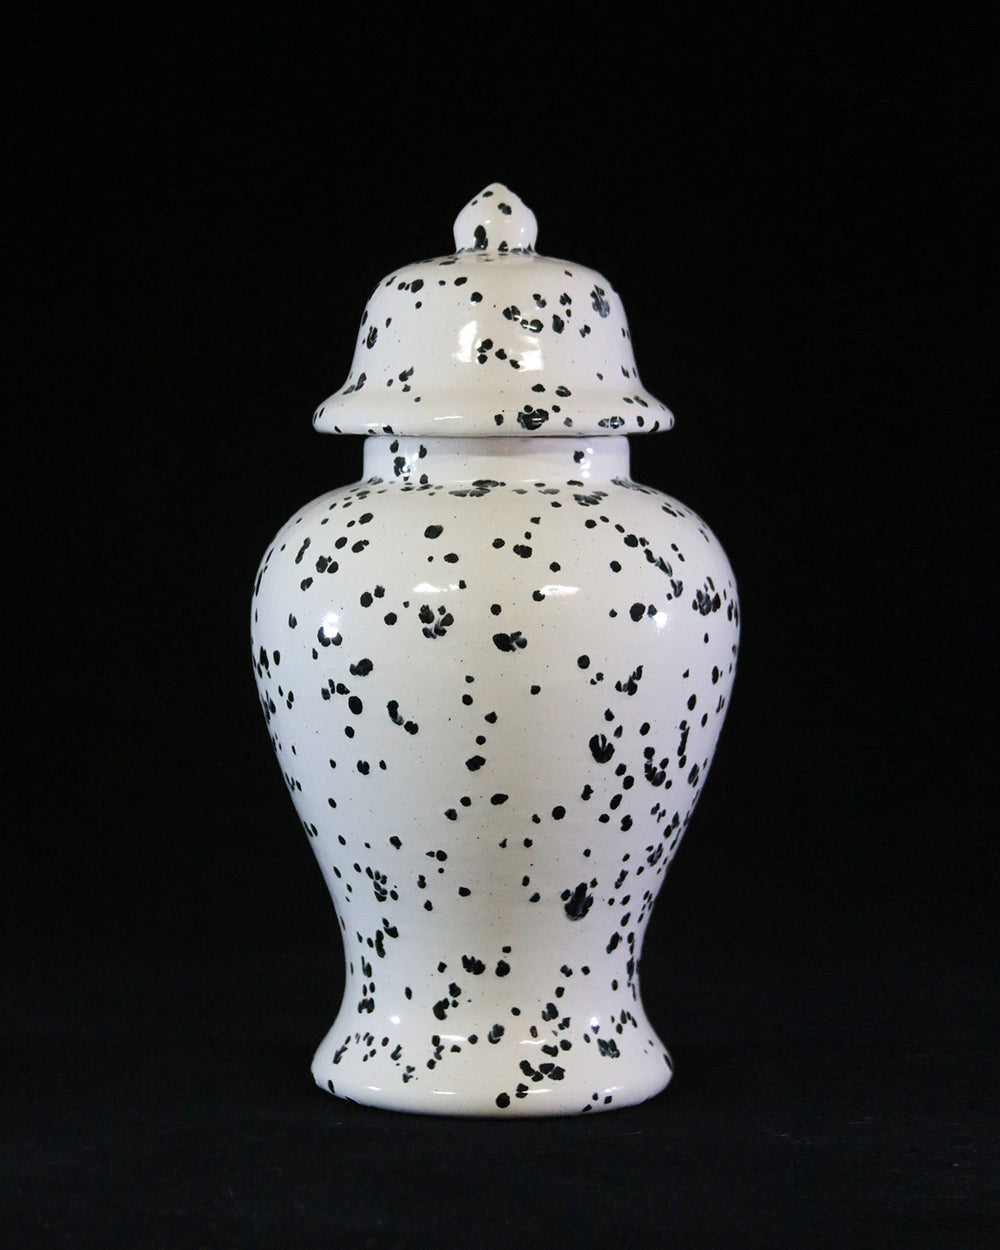 Hancrafted Ceramic Urn - Ink Spots - XLarge